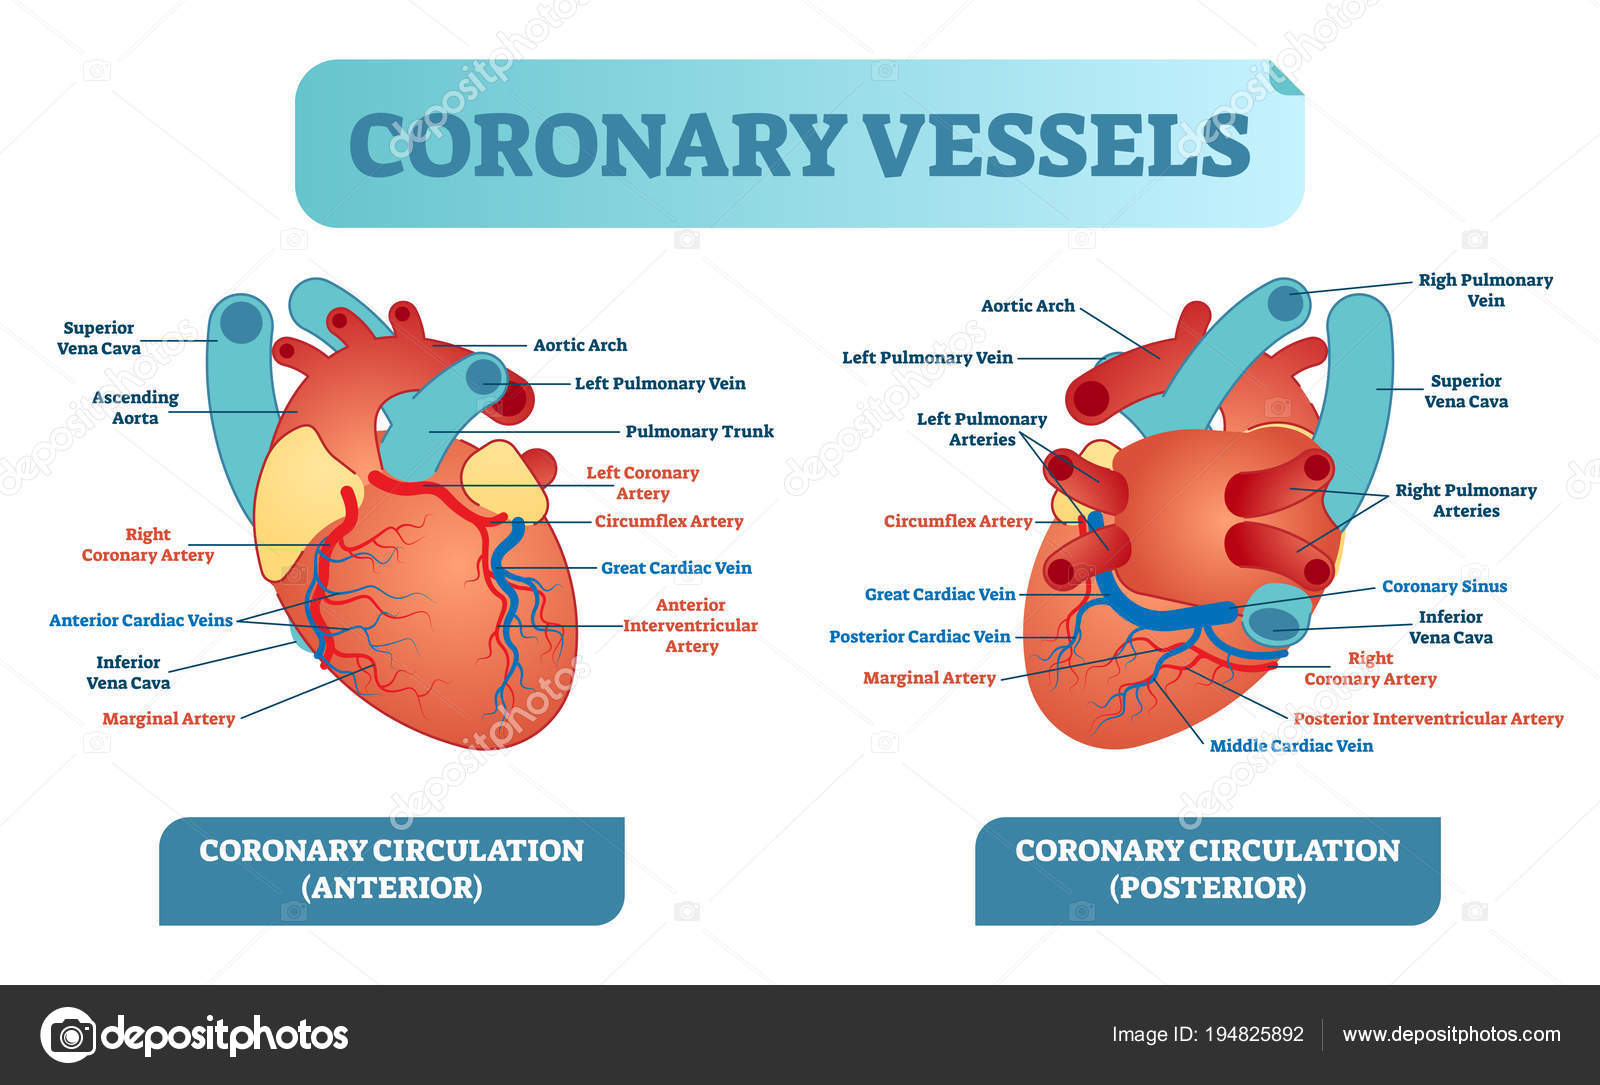 hight resolution of coronary vessels anatomical health care vector illustration labeled diagram heart blood flow system with blood vessel scheme medical information poster